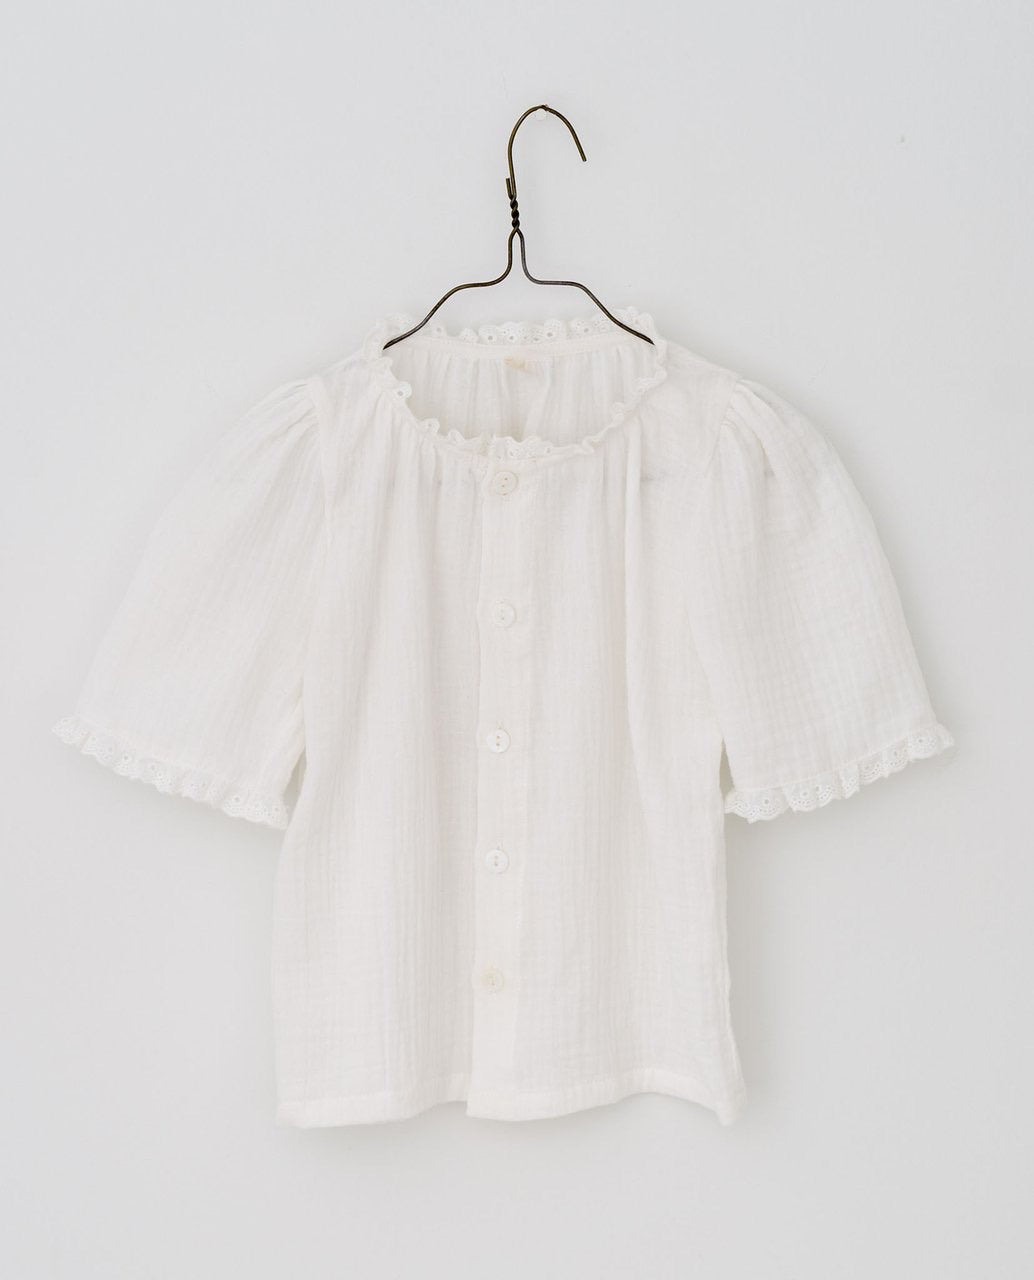 Little Cotton Clothes Winnie Blouse - Off White Muslin -2/3Y, 3/4Y, 4/5Y